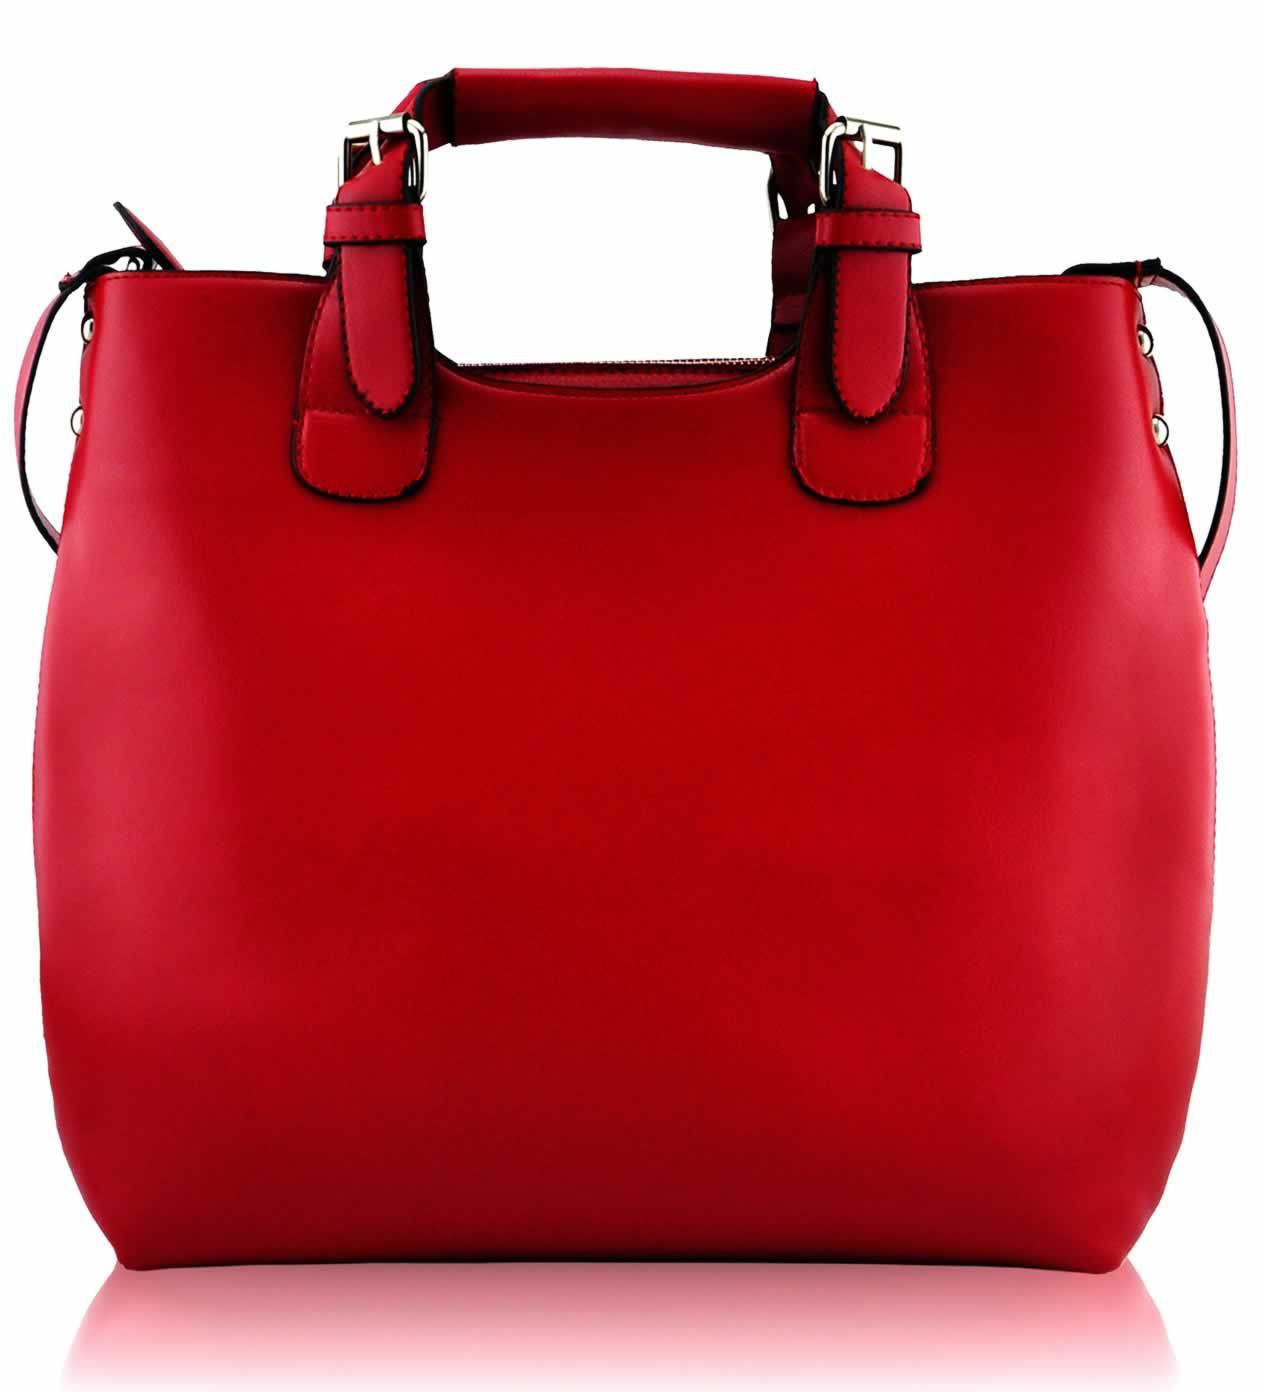 Leather Handbags And Bags For Men Women From Top Designers Description Shoeslandor Ate Co Uk I Searched This On Bing Images